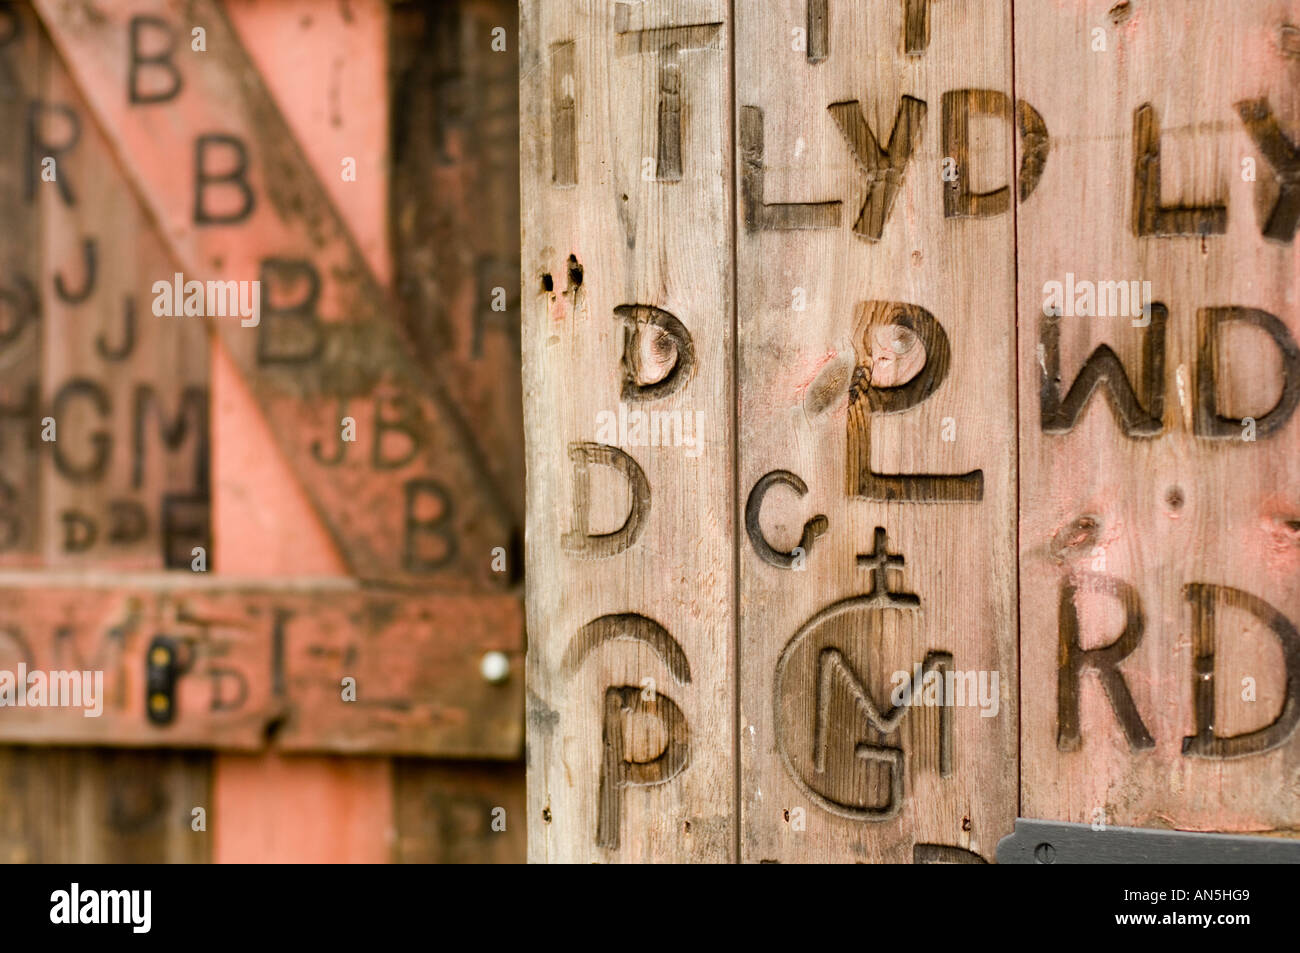 wooden shutters on old blacksmith's shop Penybont Powys wales, with branded marks of letters and symbols scorched into the doors - Stock Image